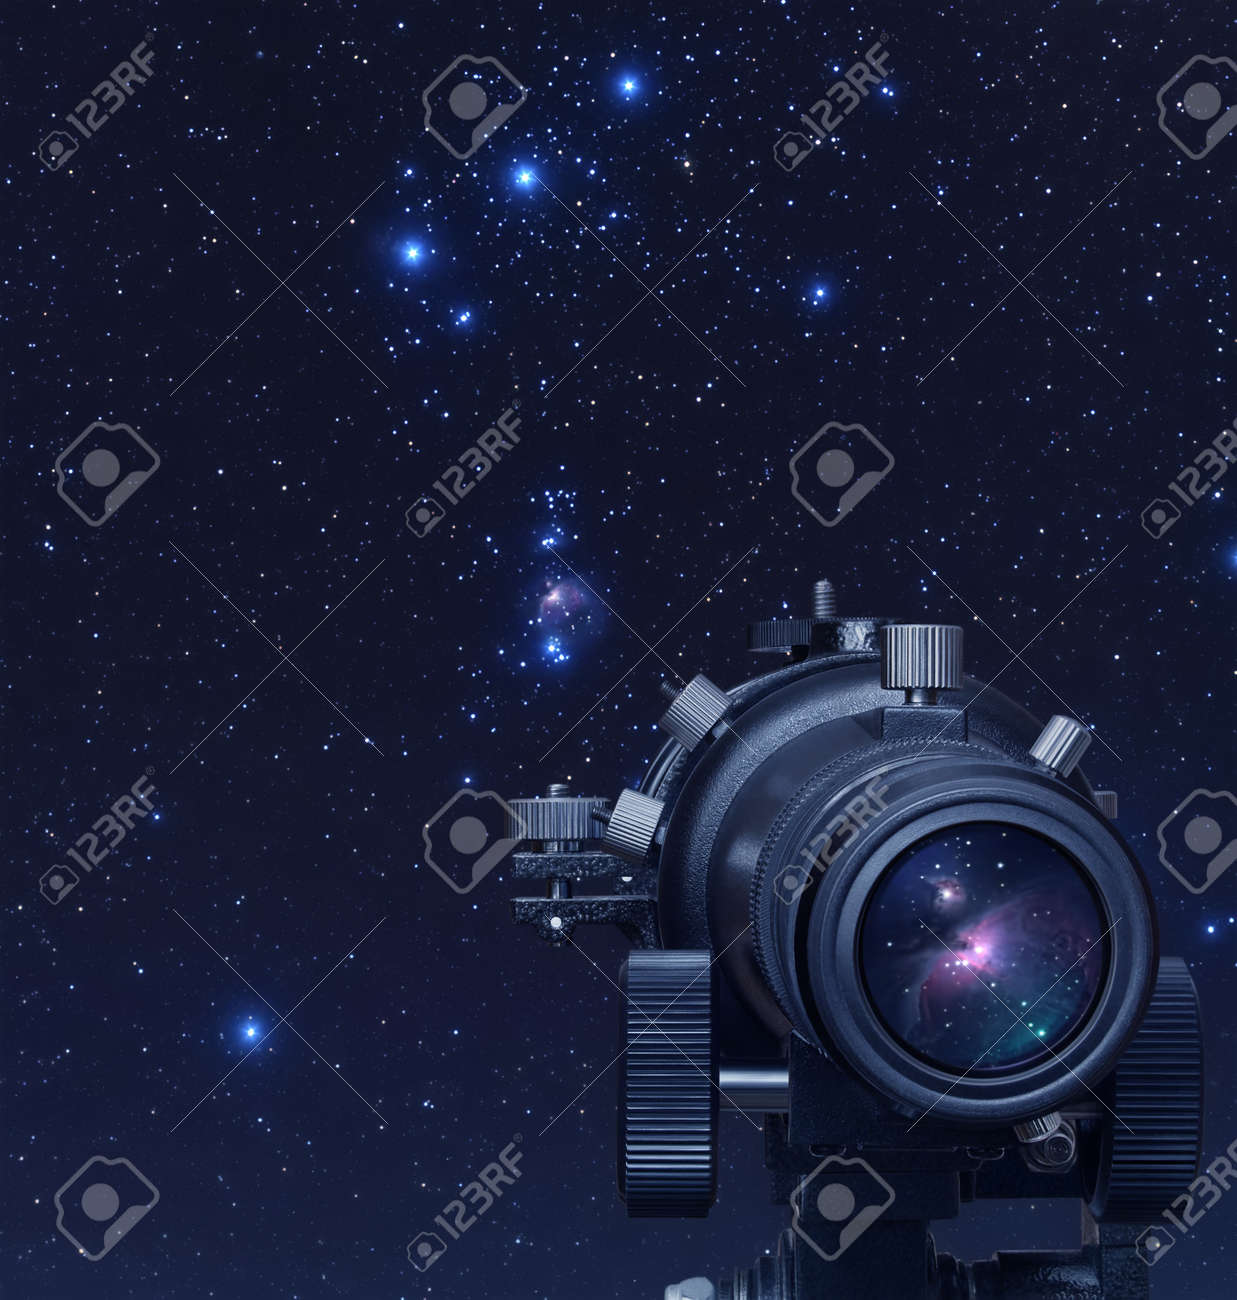 A picture of telescope pointed at Orion nebula - 18405867